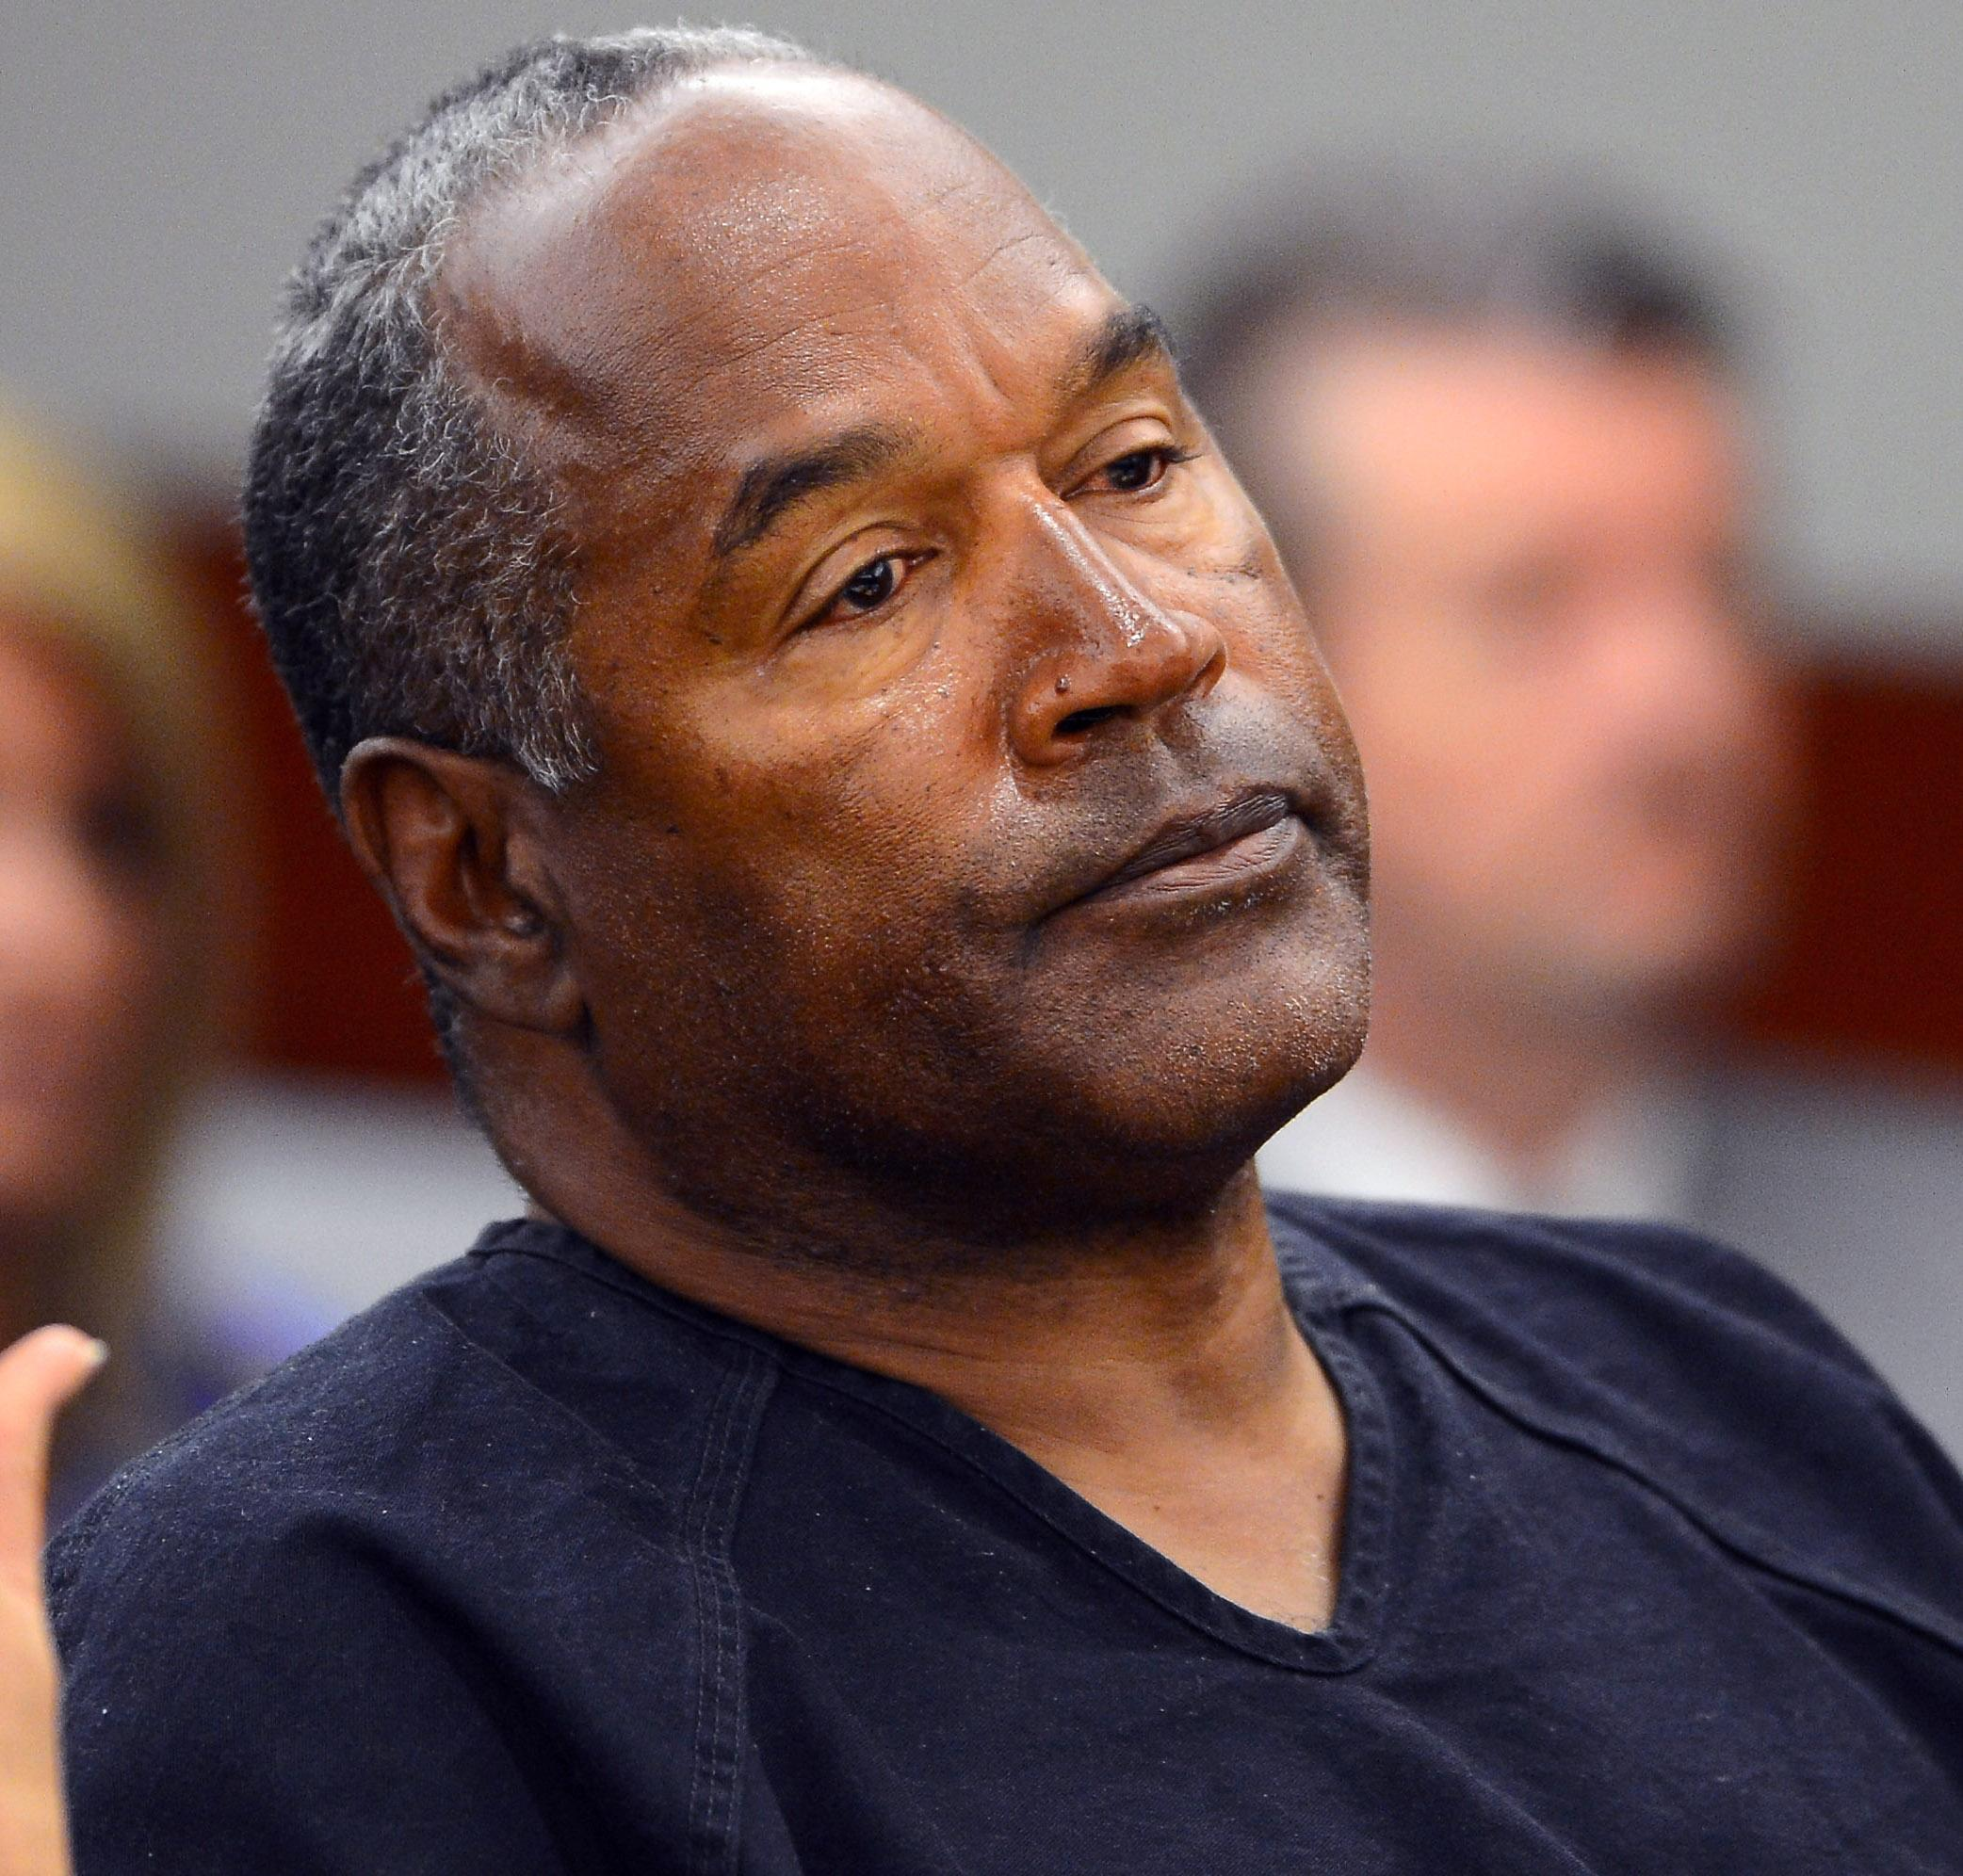 8 OJ SIMSON 10 Sports Stars Who Committed Terrible Crimes